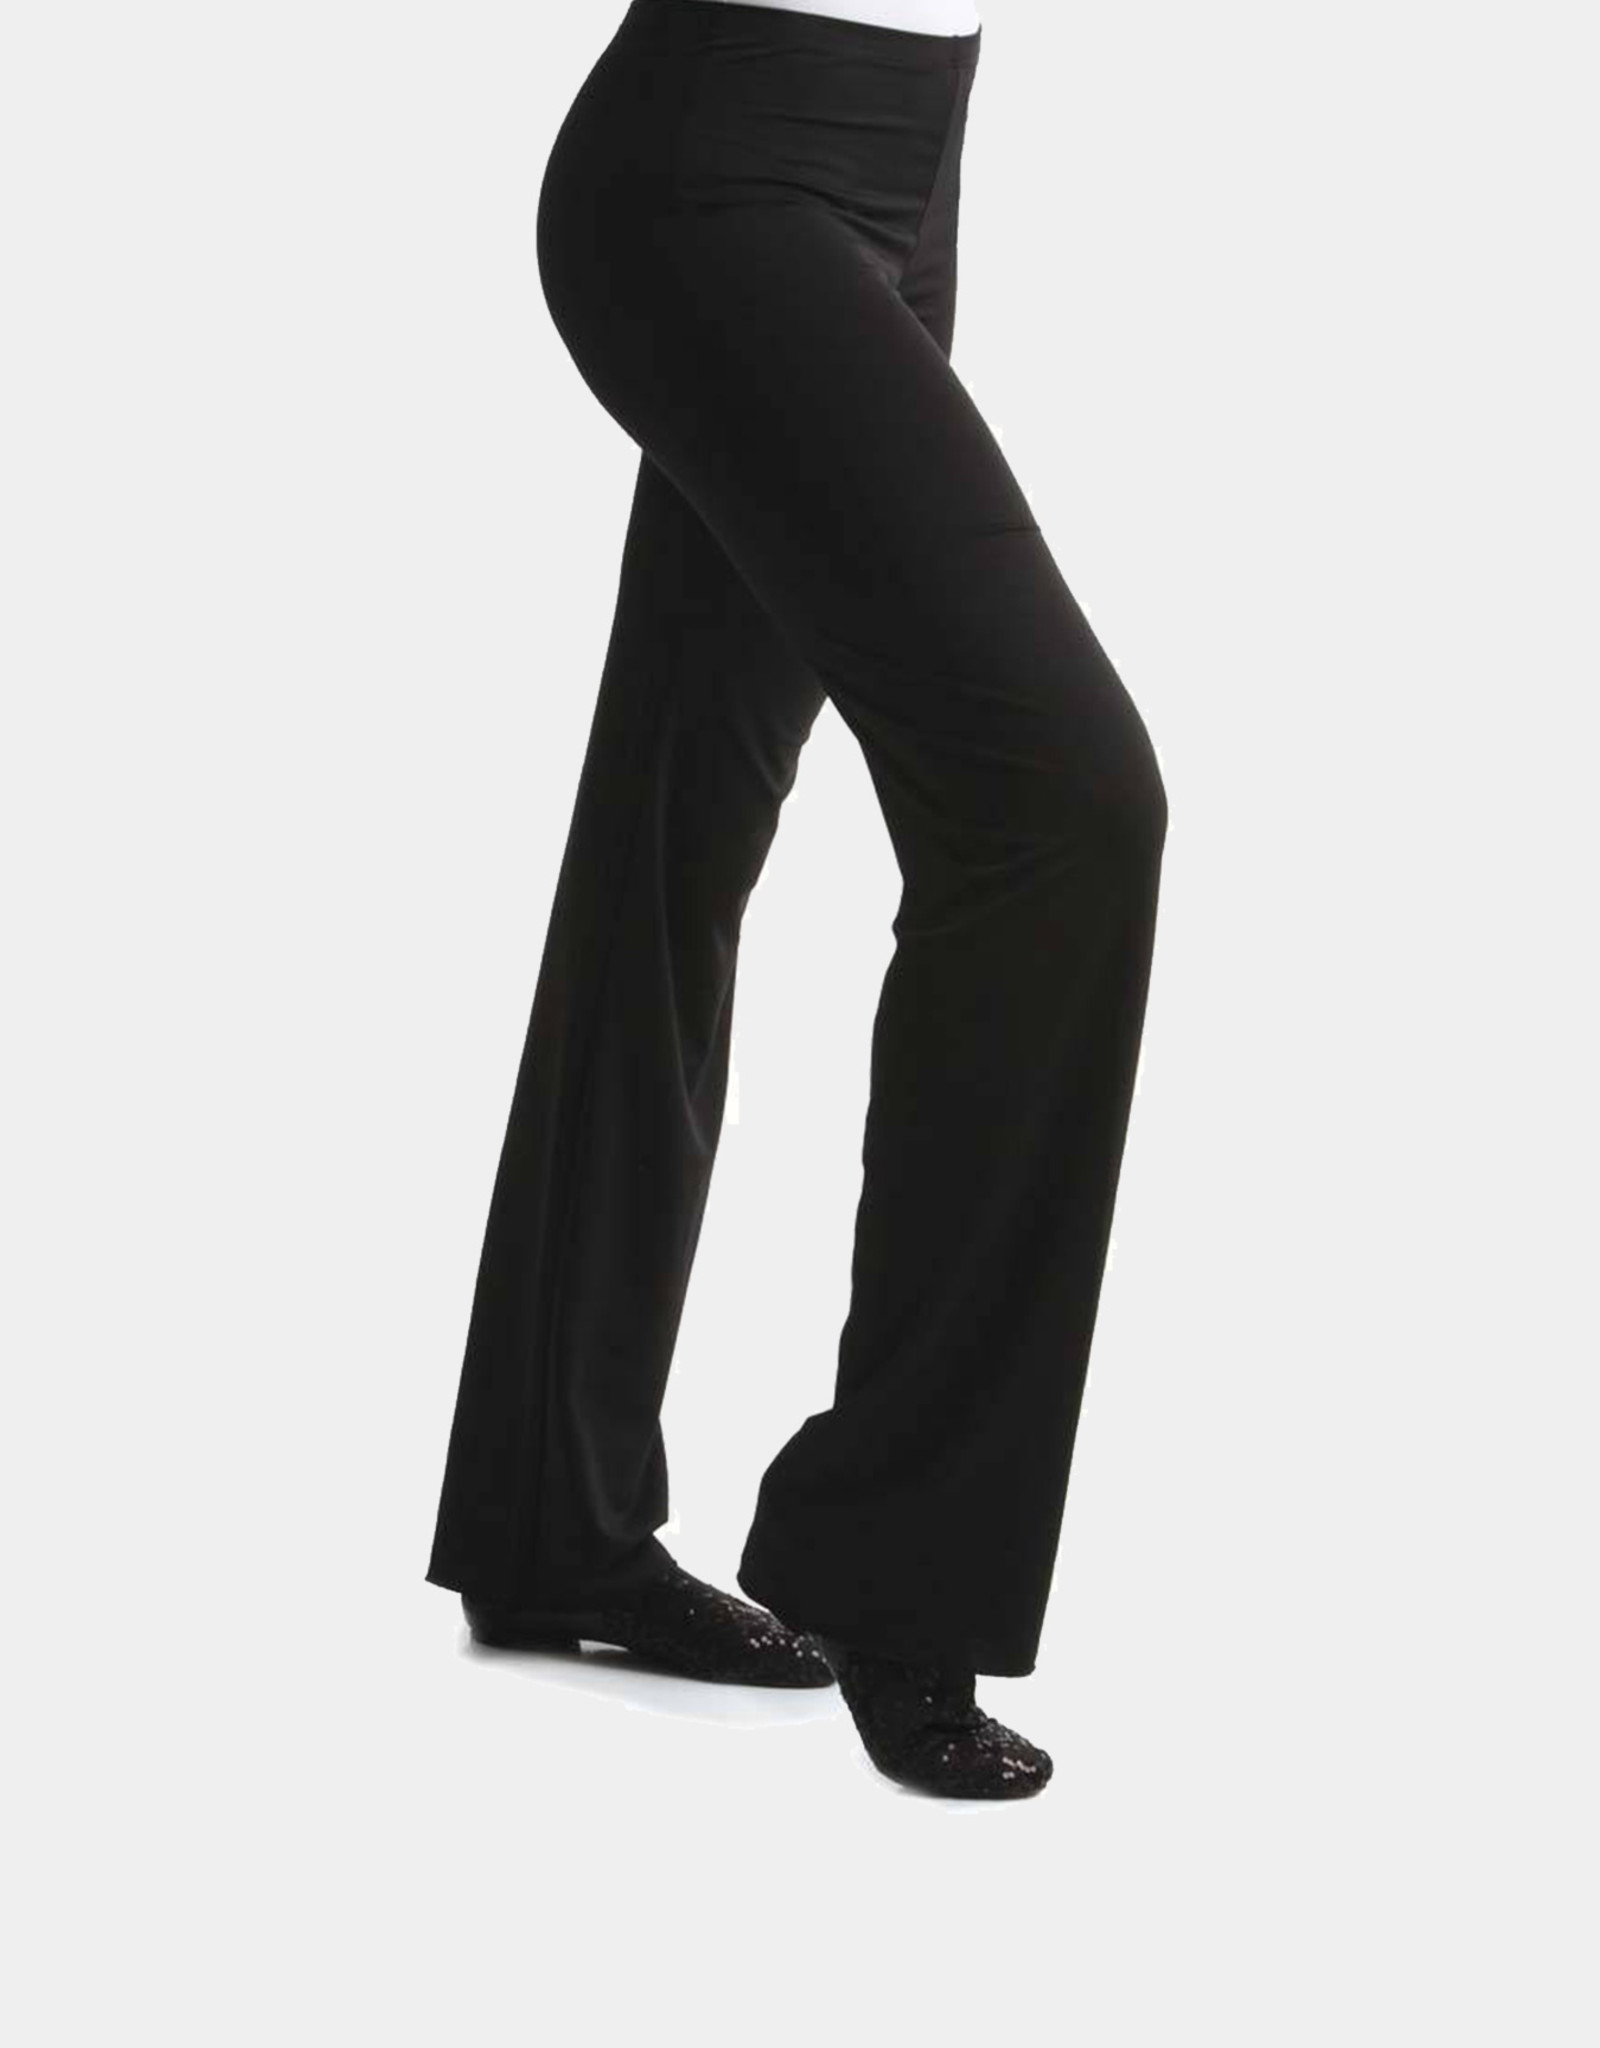 BODY WRAPPERS GIRL'S JAZZ PANTS (191)